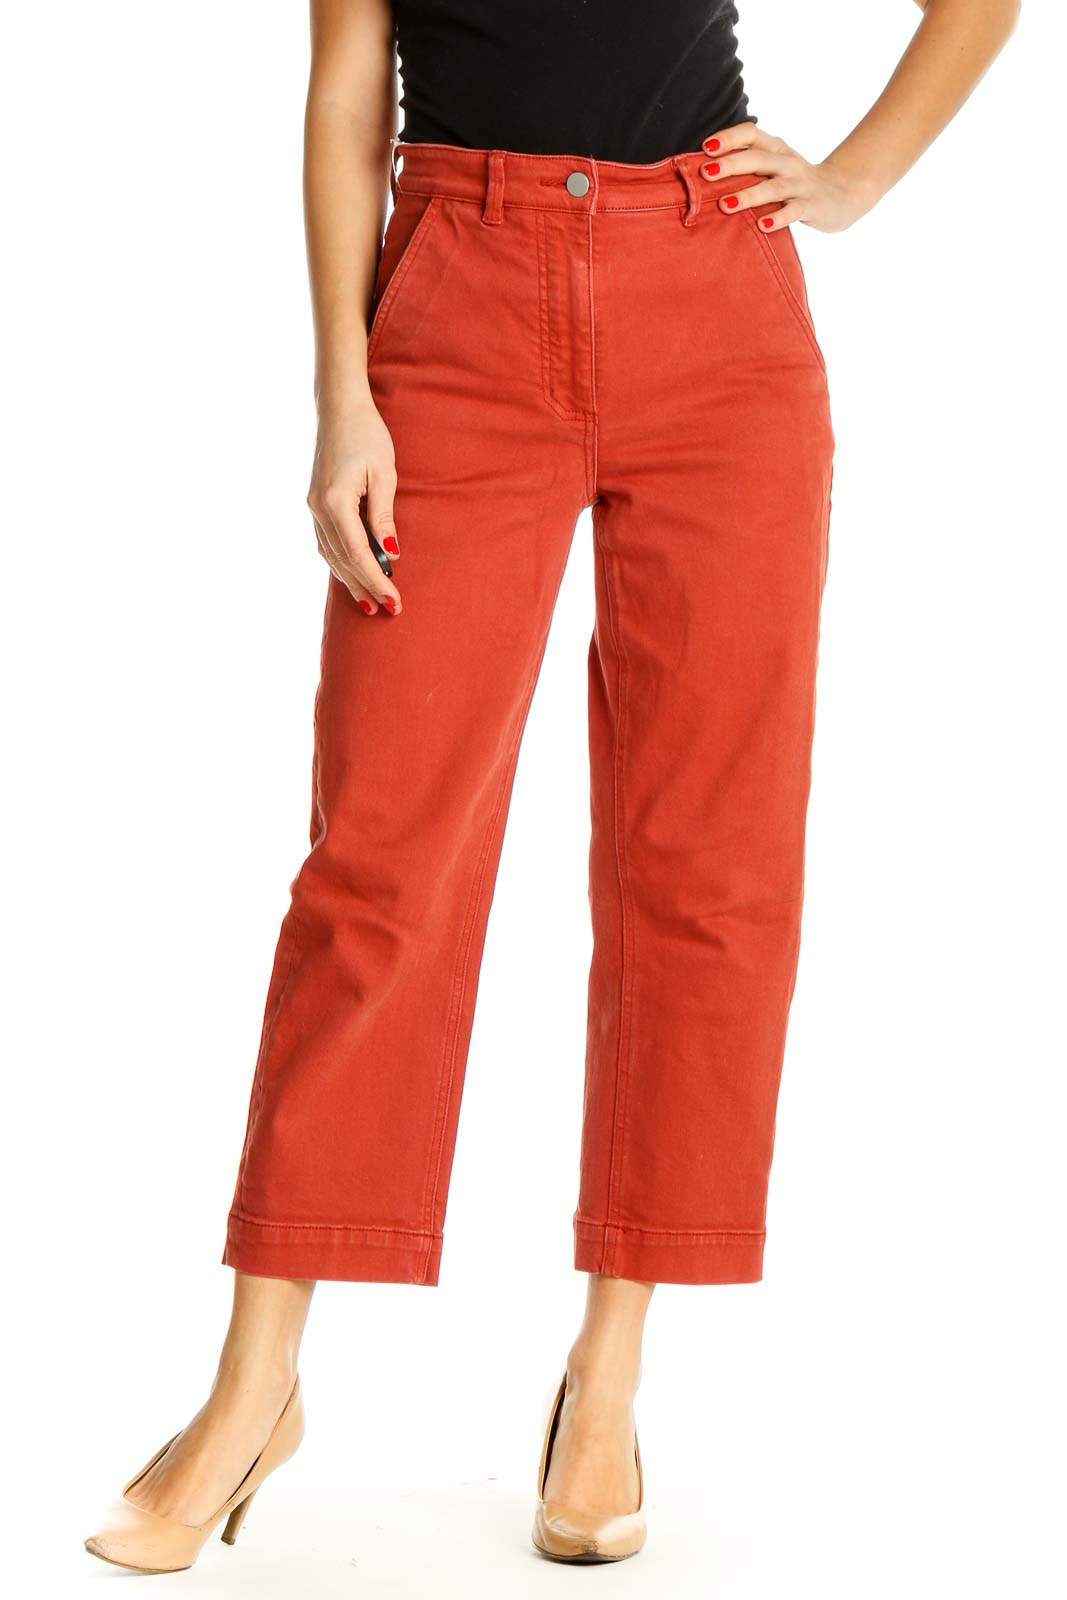 Red Solid Casual Trousers Front